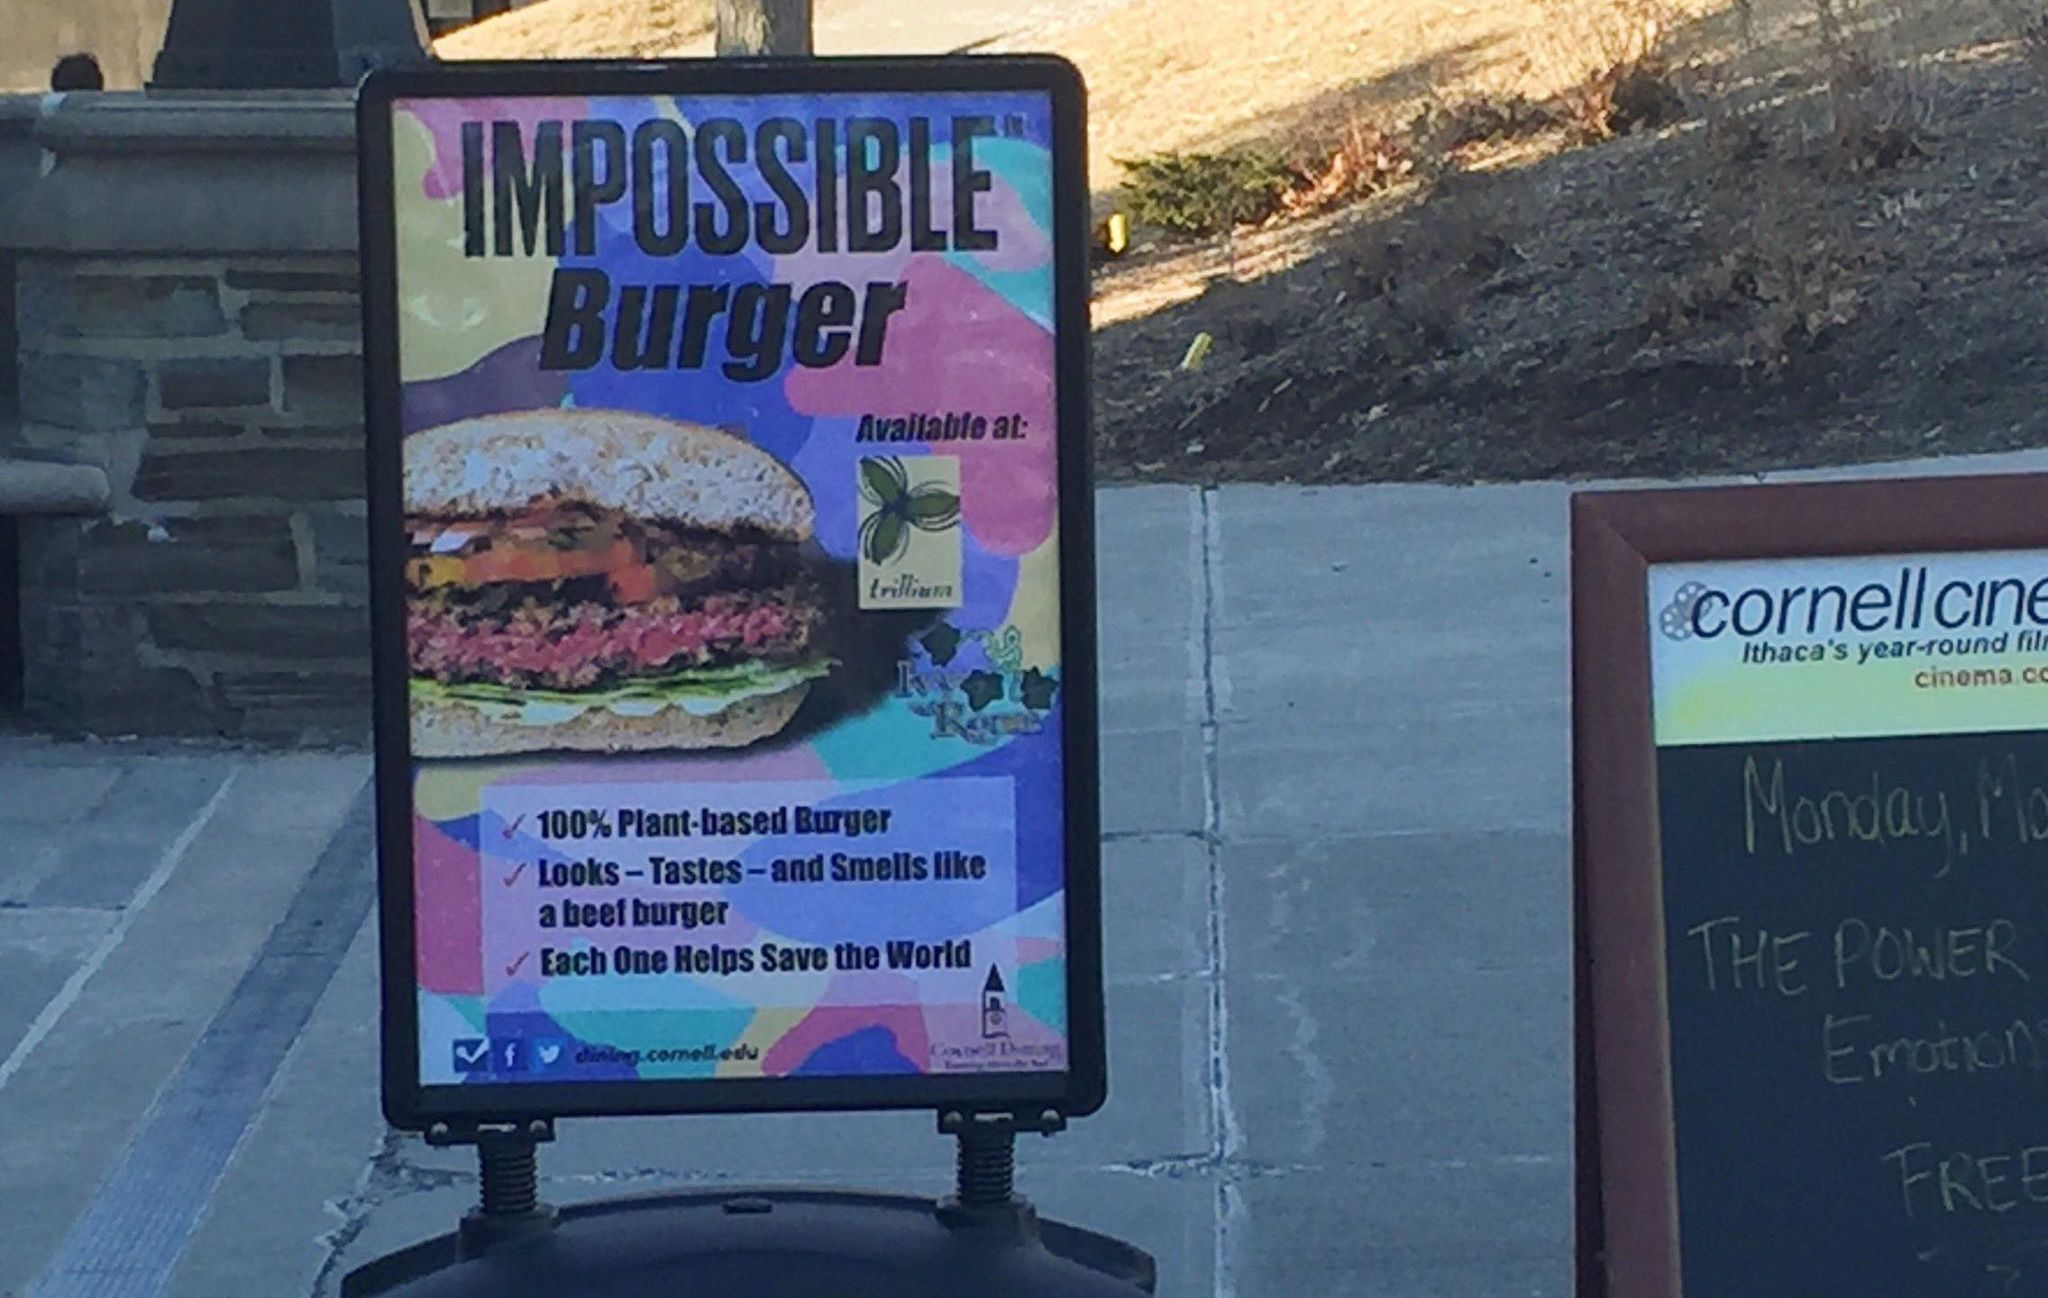 Impossible! This Average Veggie Burger Costs 10.99